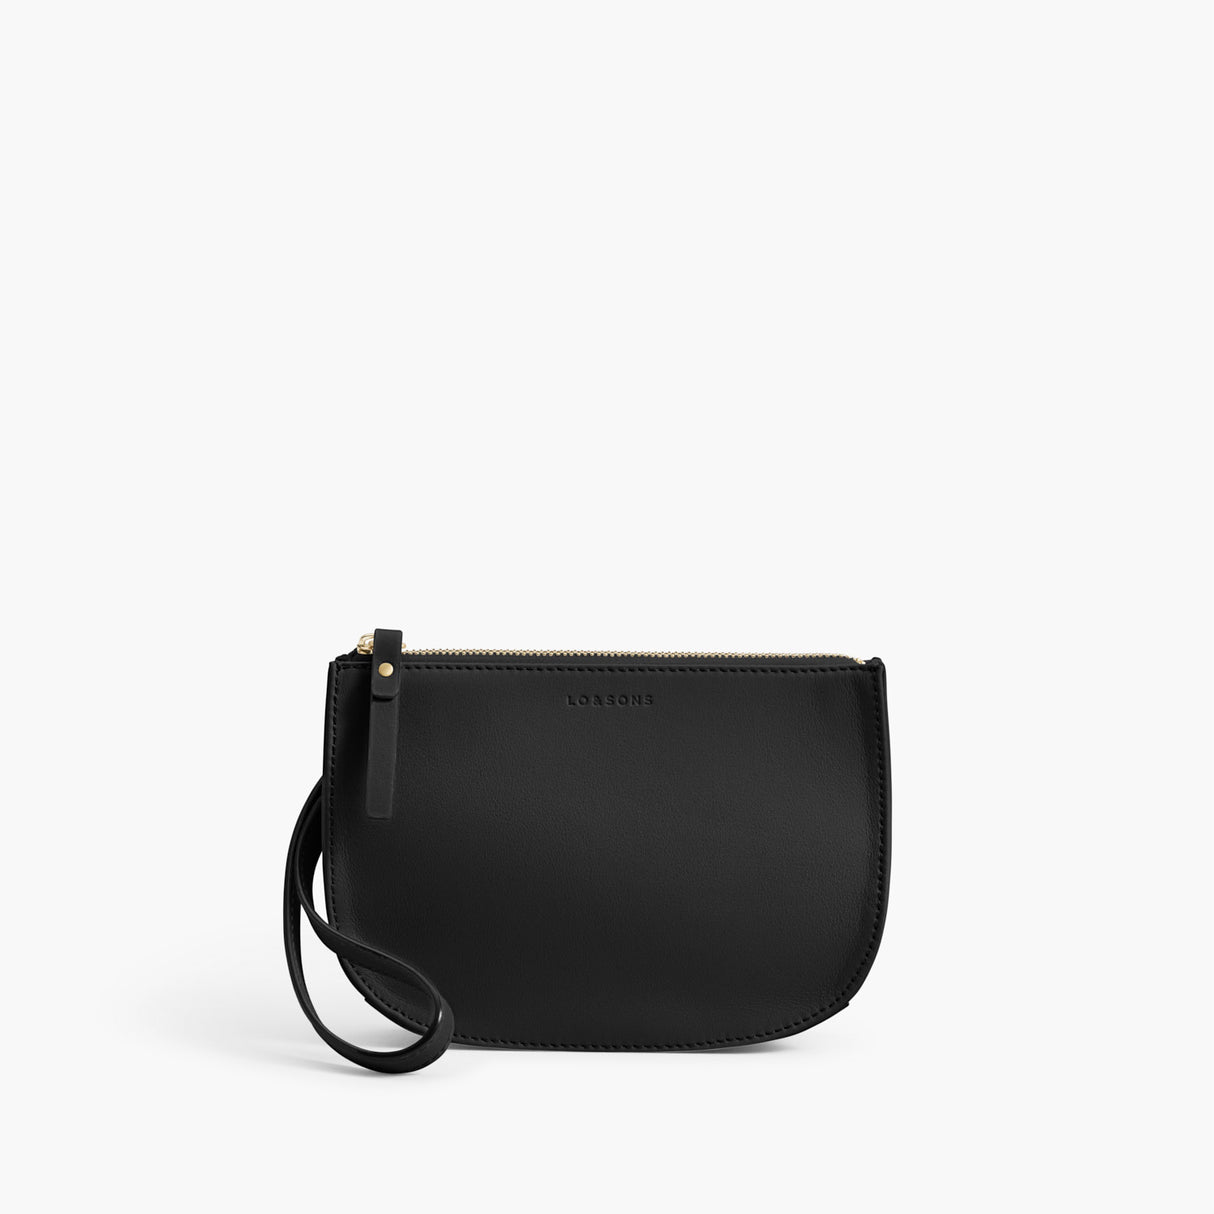 Front Wristlet - The Waverley 2 - Nappa Leather - Black / Gold / Grey - Crossbody - Lo & Sons